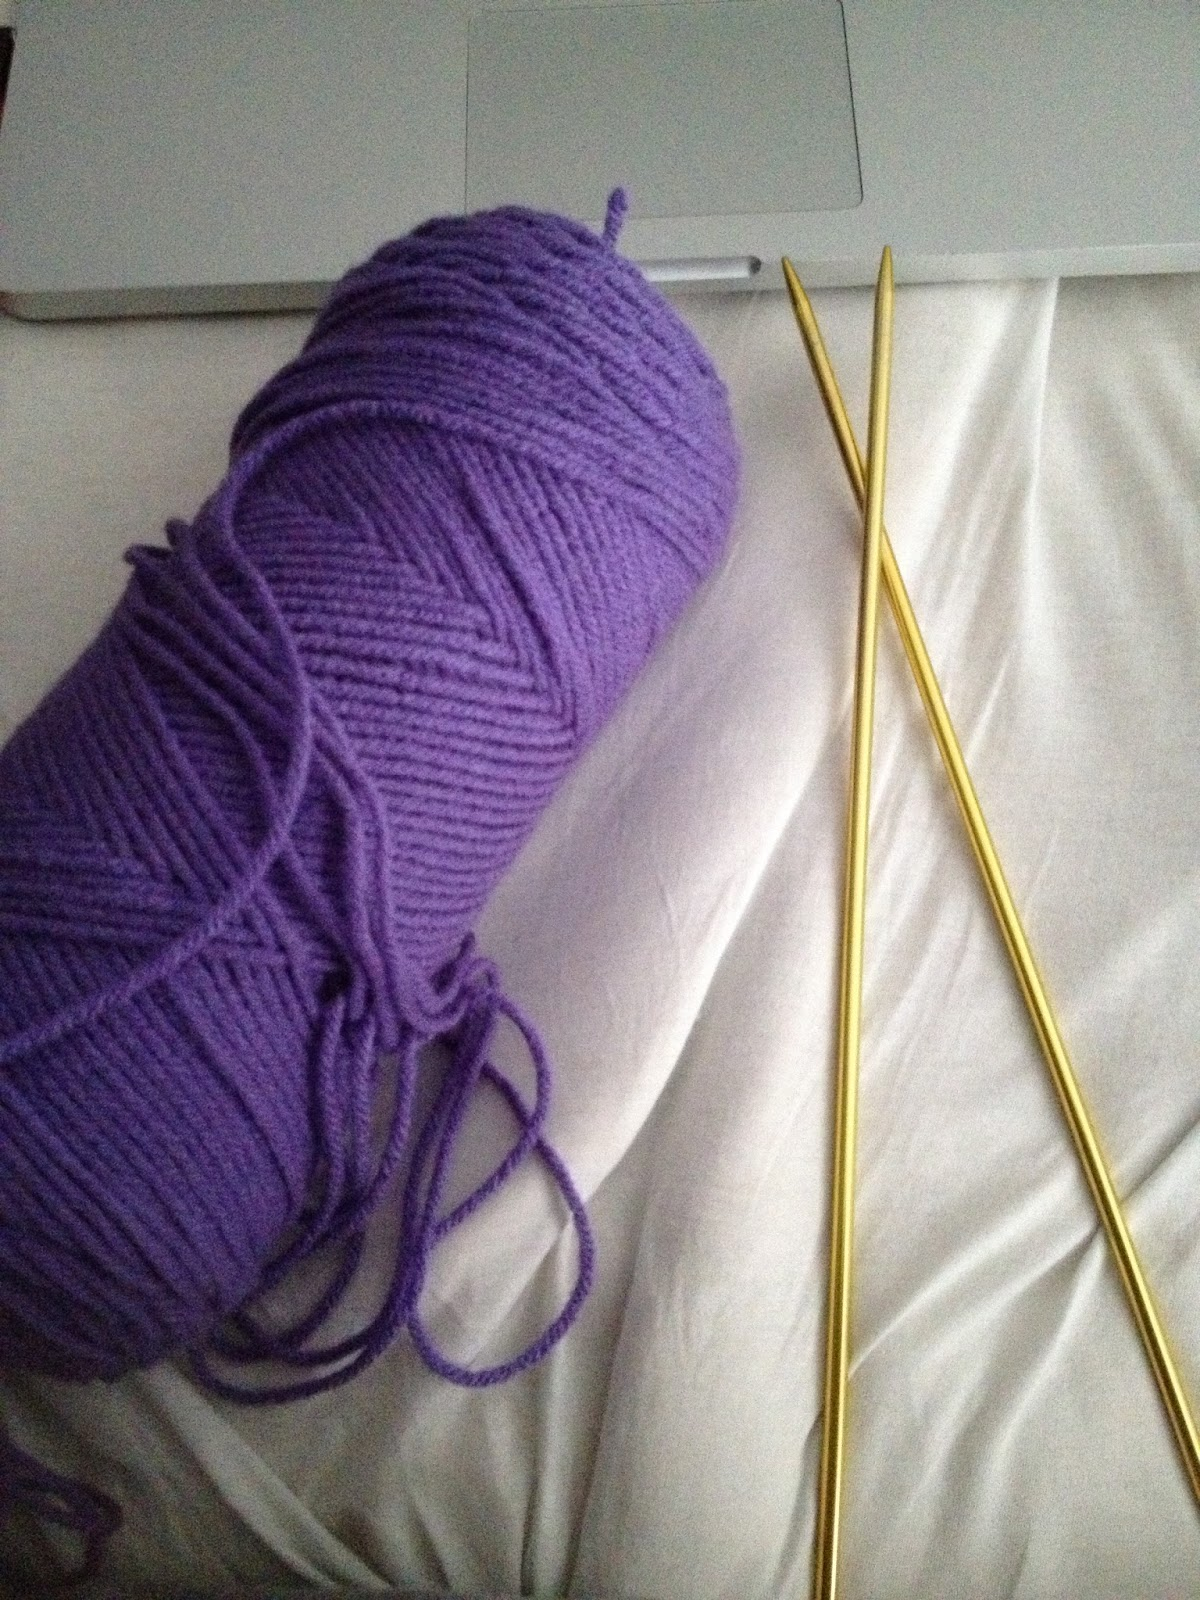 Knitting Long Tail Cast On Method : Knit your life how to cast on using the long tail method